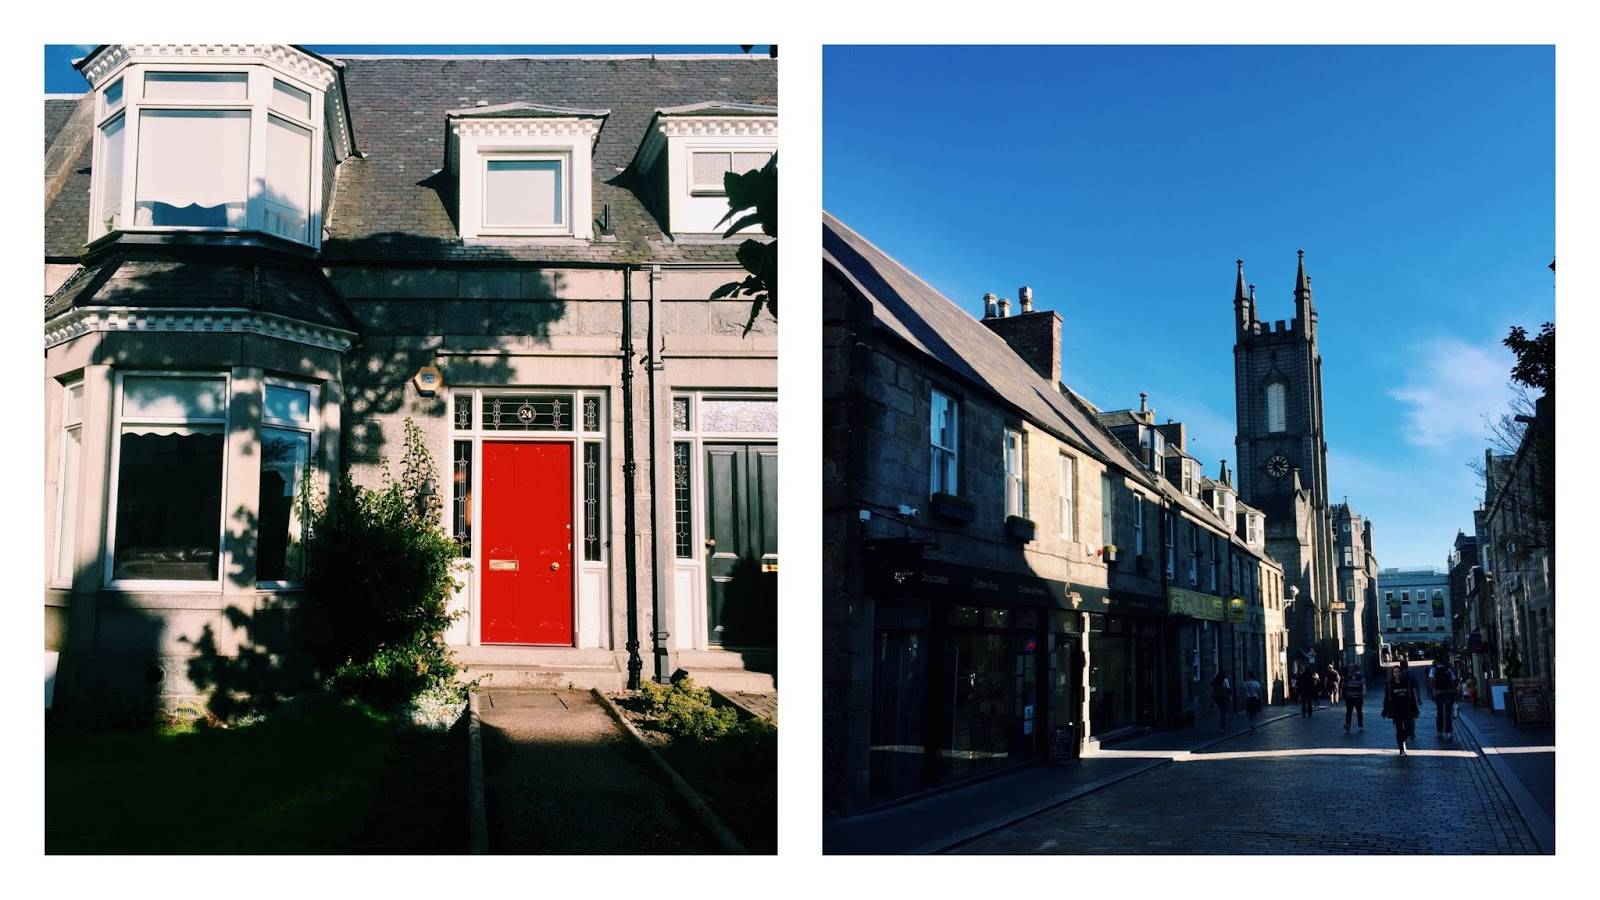 Typical Red Doors and Belmont Street Aberdeen